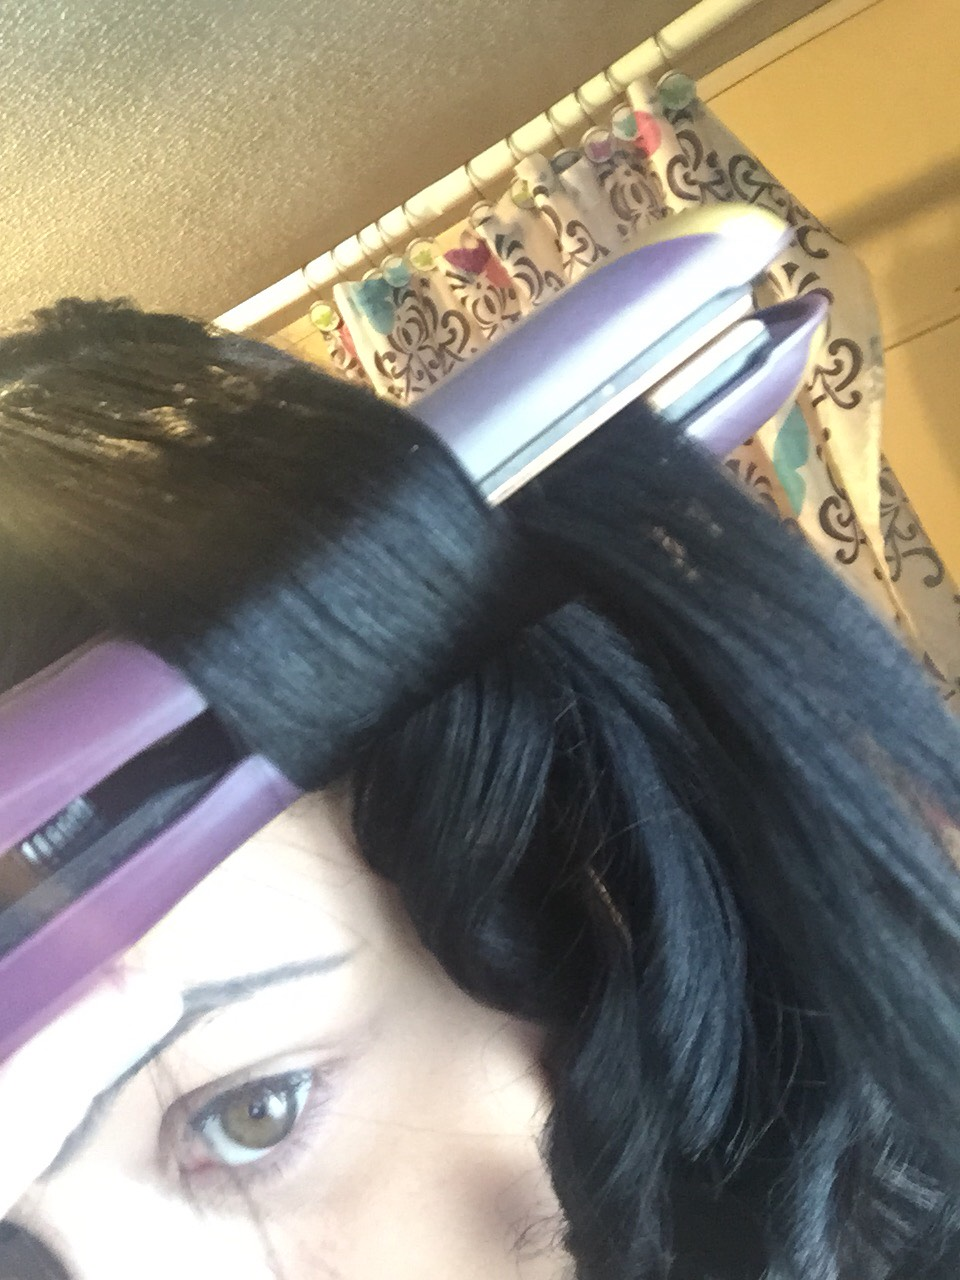 Place the piece of hair into the flat iron, as close to the scalp as possible.  I personally have thick hair, and use a 450 degree iron on my hair.  Pull the flat iron slightly away from the head and turn your wrist inward, until a portion of the hair is wrapped around both sides of the iron